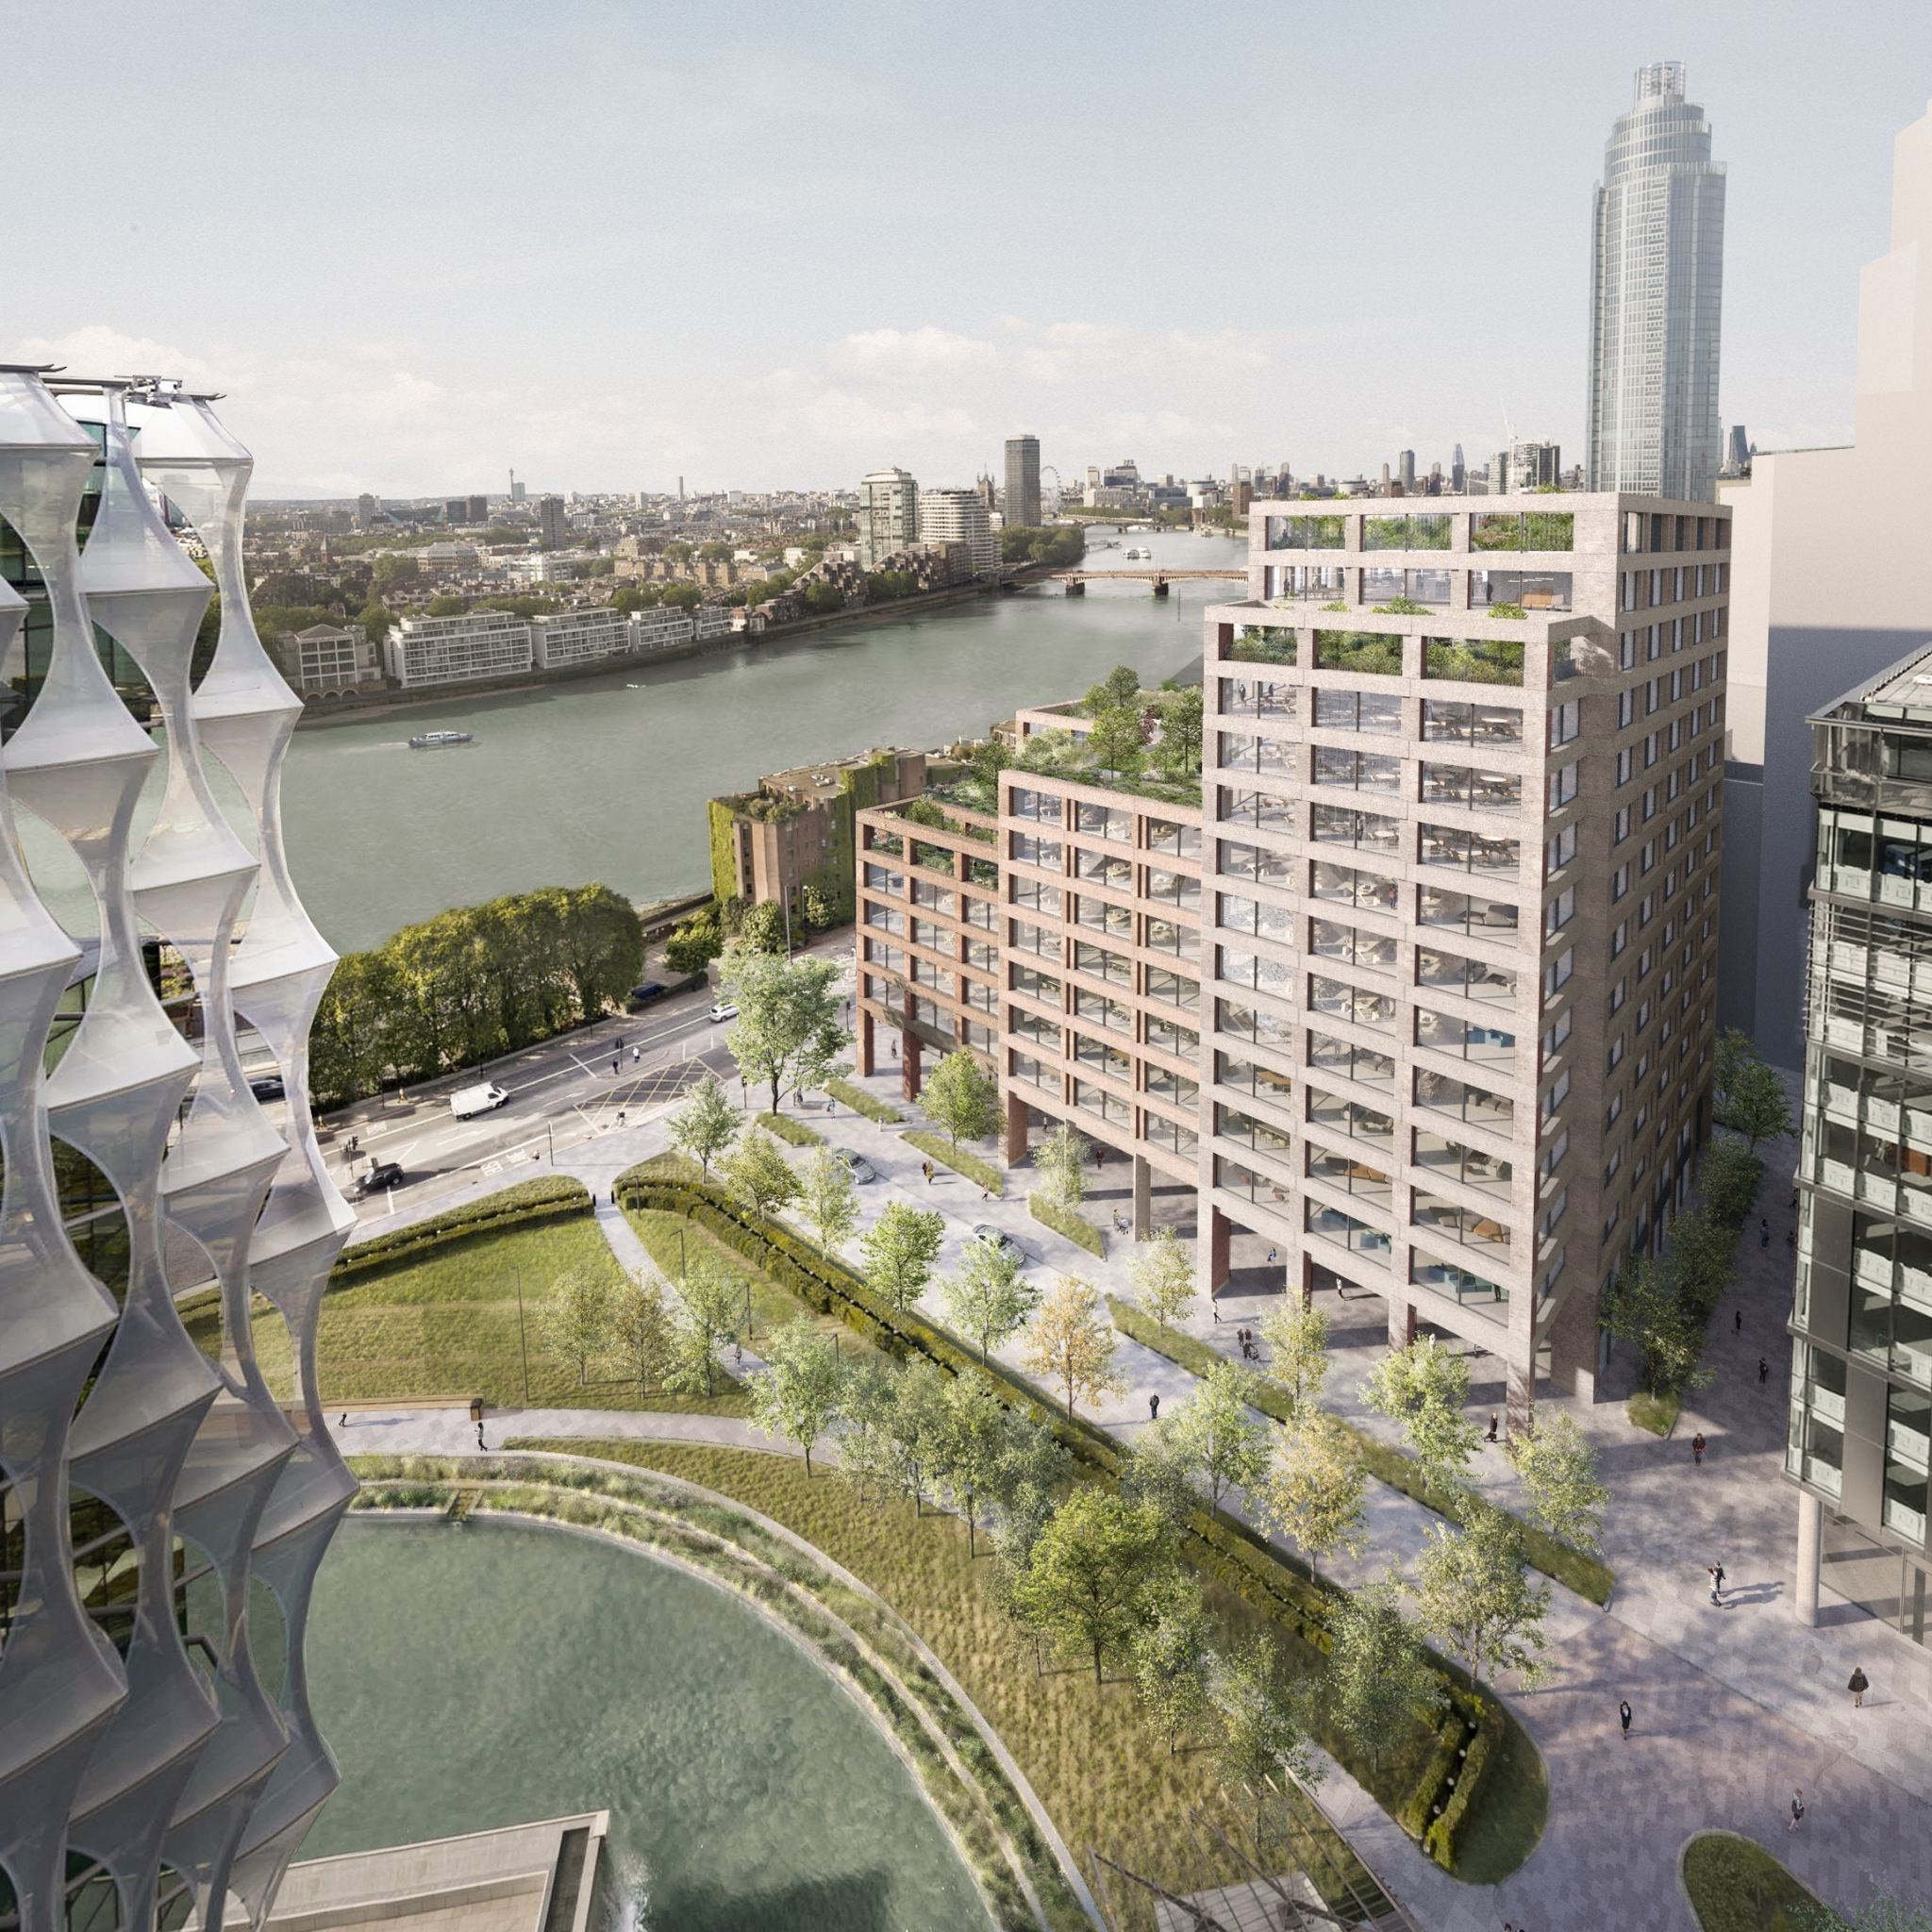 Planning permission granted for new 13 storey London offices